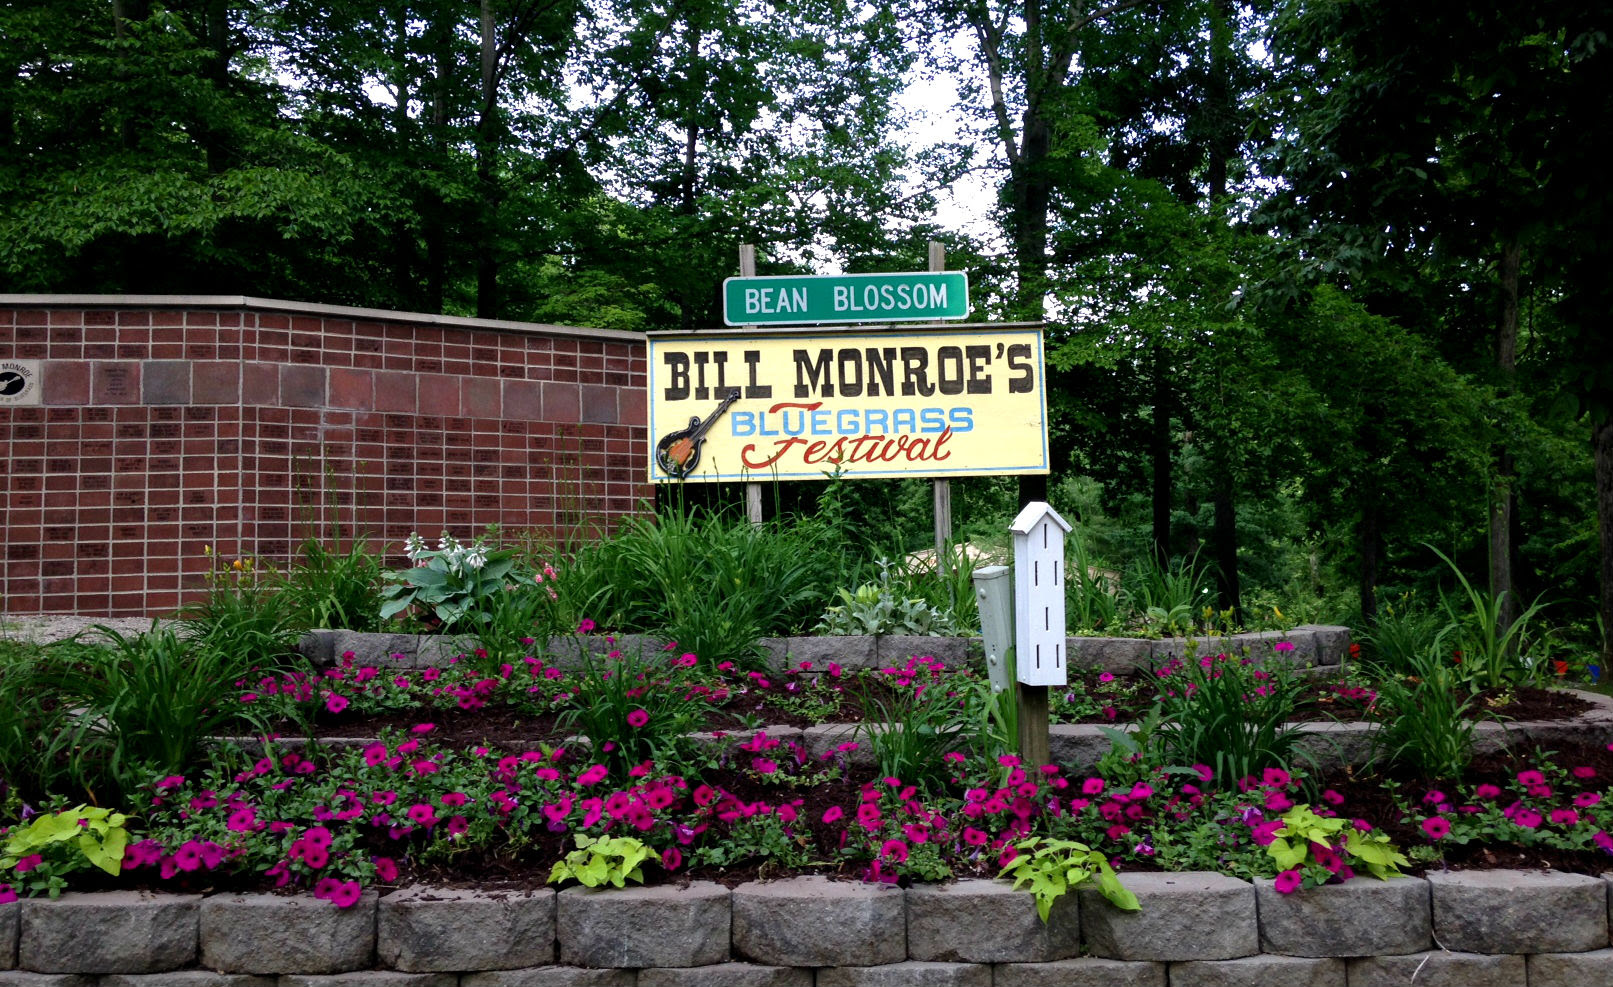 48th Annual Bill Monroe Memorial Bean Blossom Bluegrass Festival